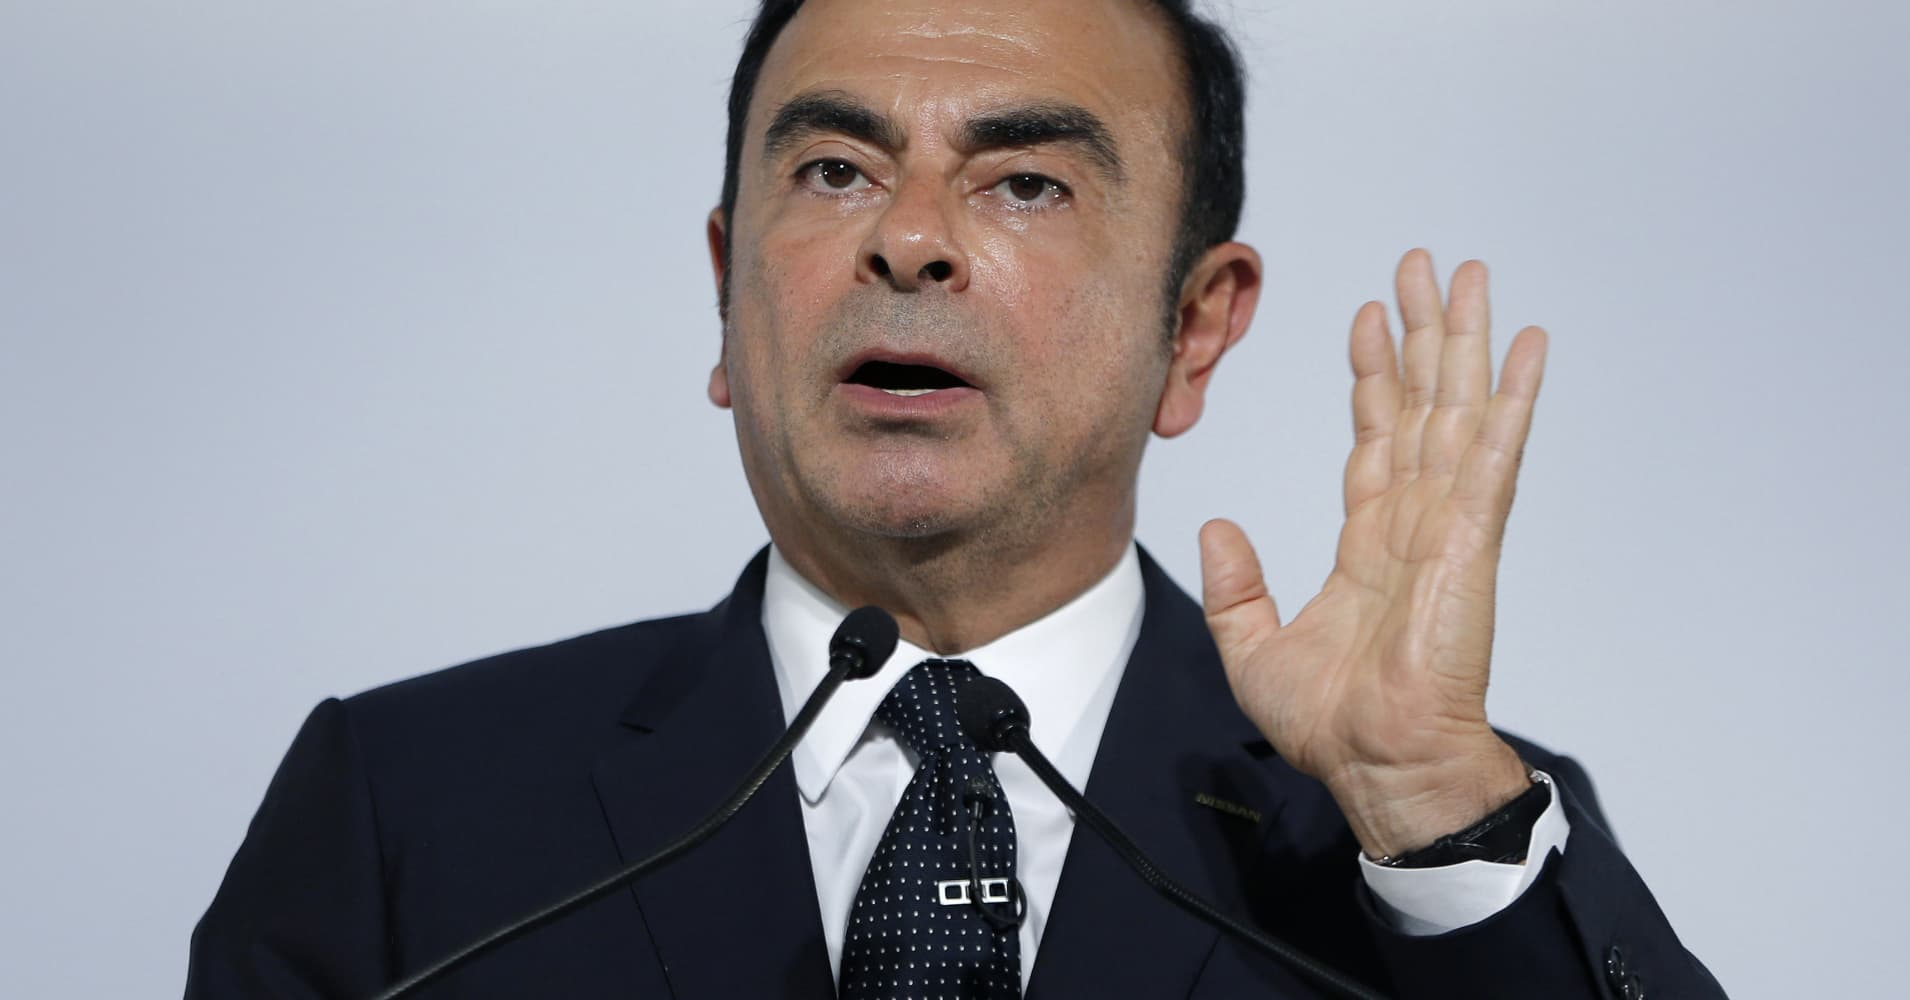 Read the full statement from Nissan regarding allegations against Chairman Carlos Ghosn